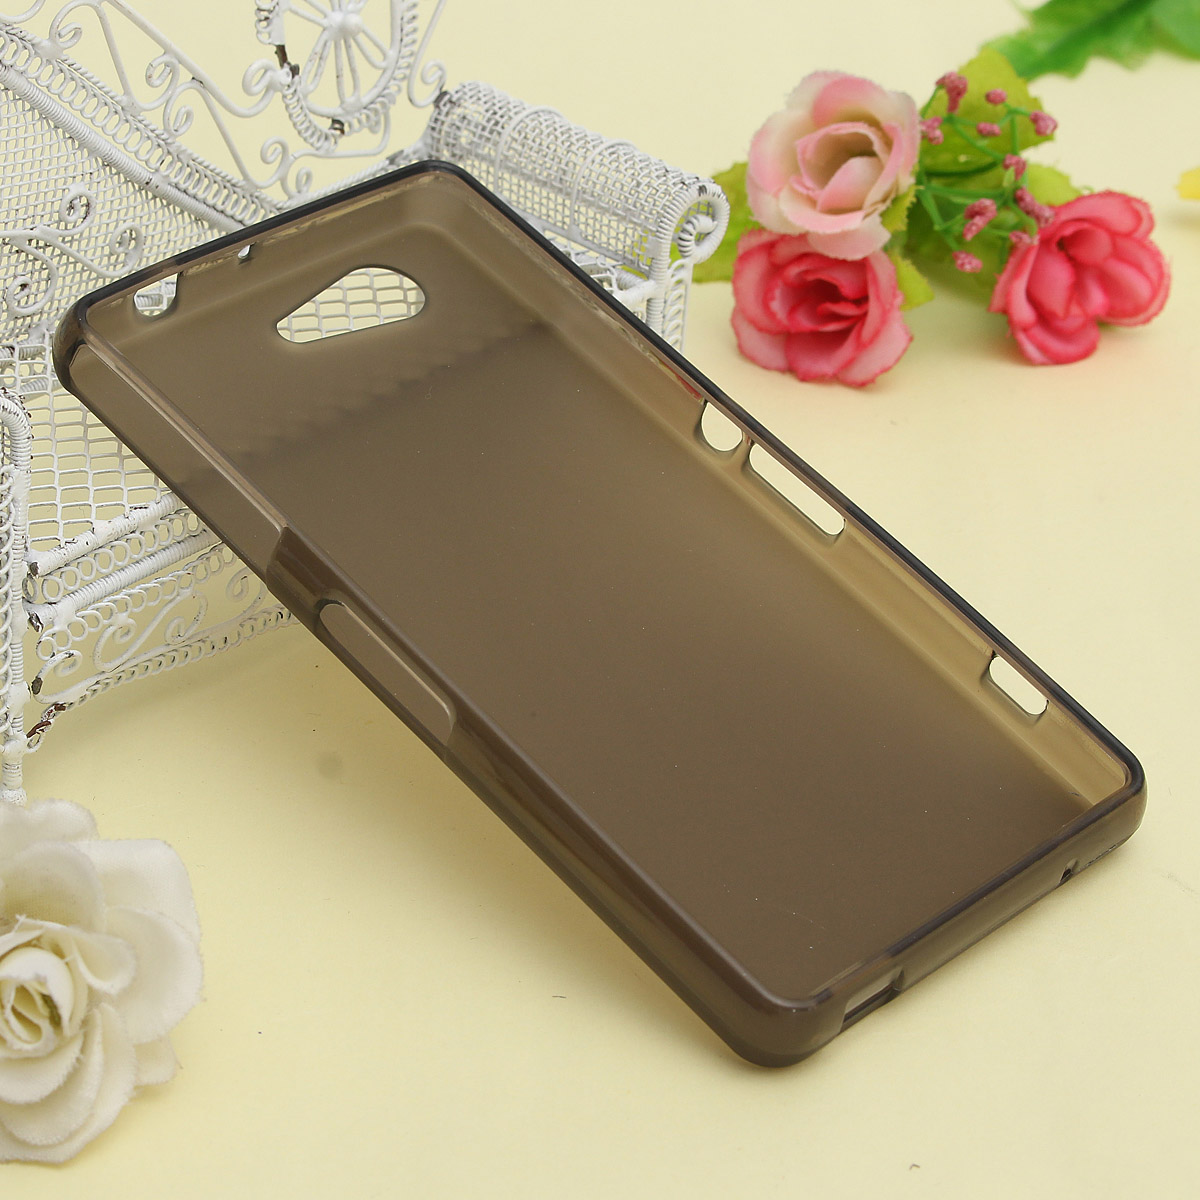 Slim Matte TPU Soft Back Cover Case For Sony Xperia Z3 Compact M55W